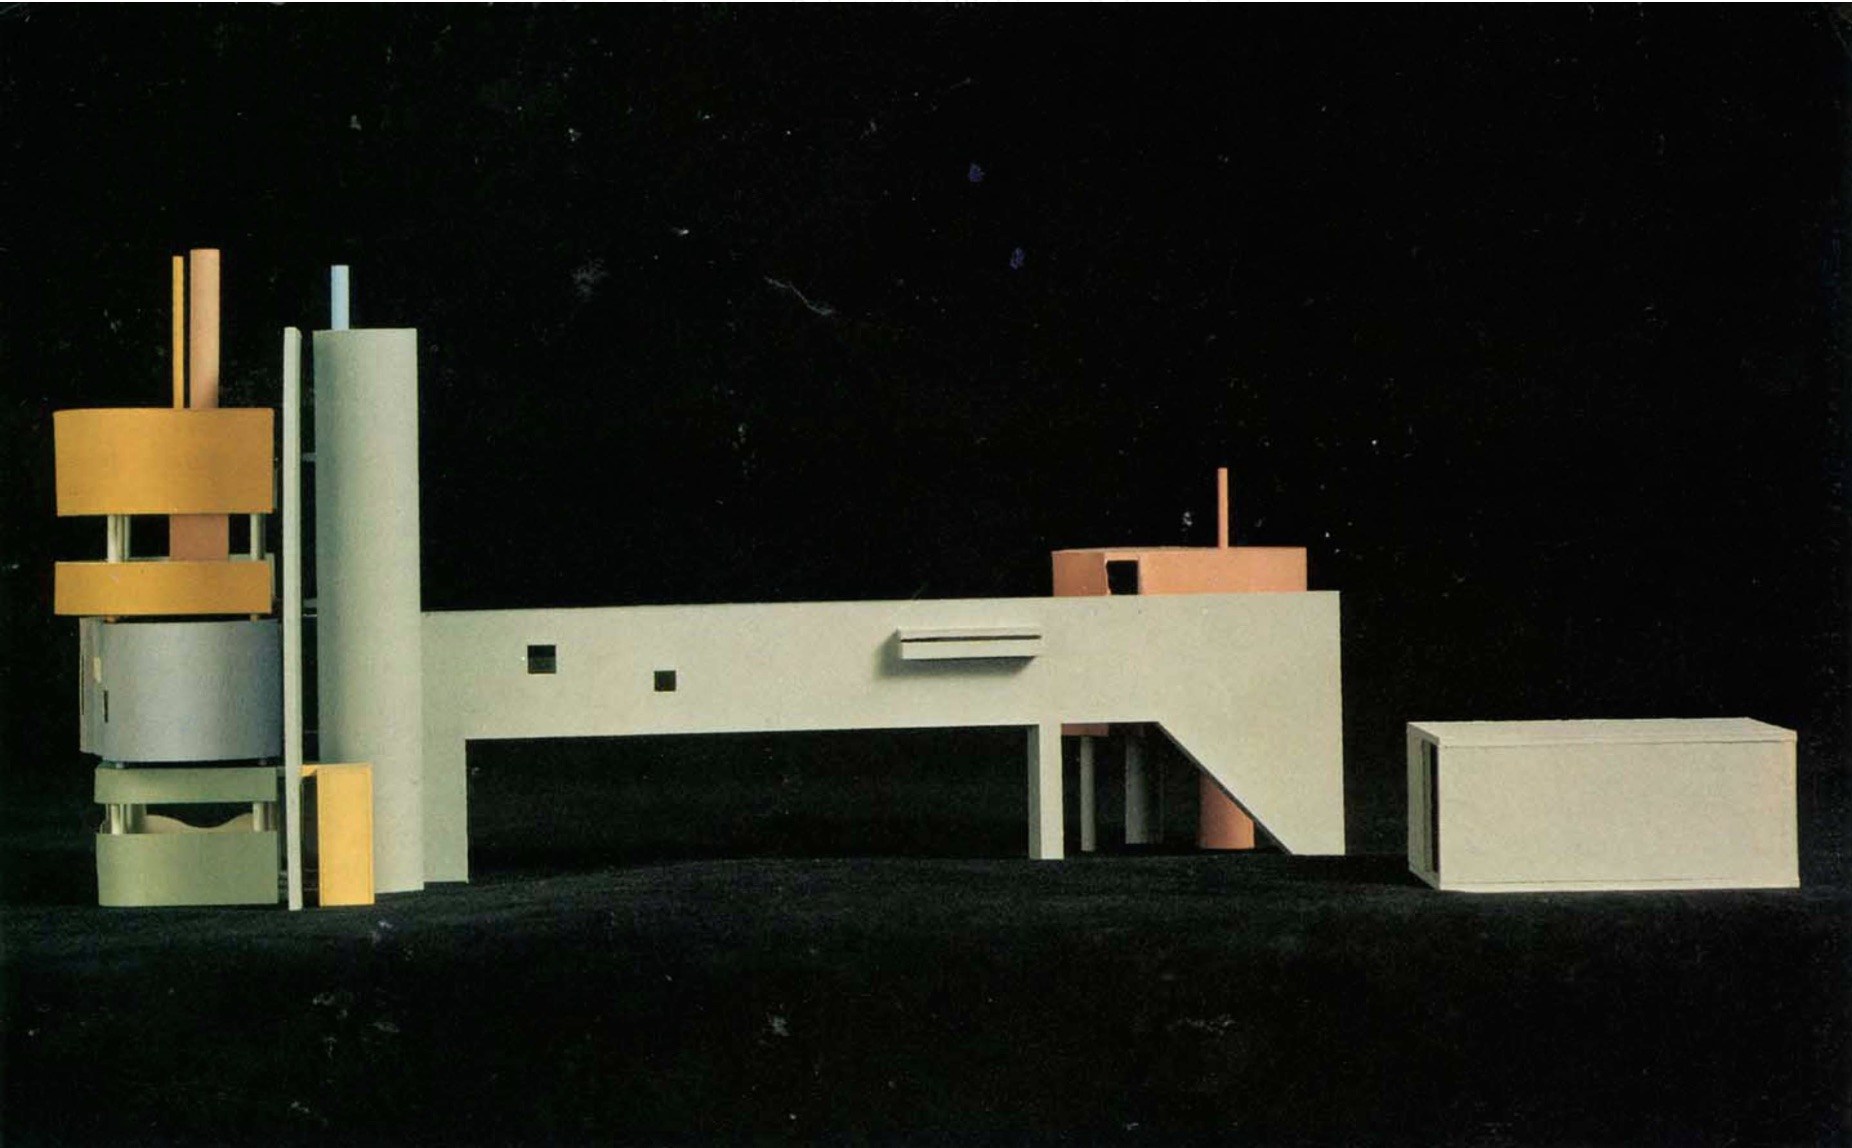 John Hedjuk, front view of scale model for Bye House, 1973. Photo from the exhibition at the Rennaisance Society at the University of Chicago